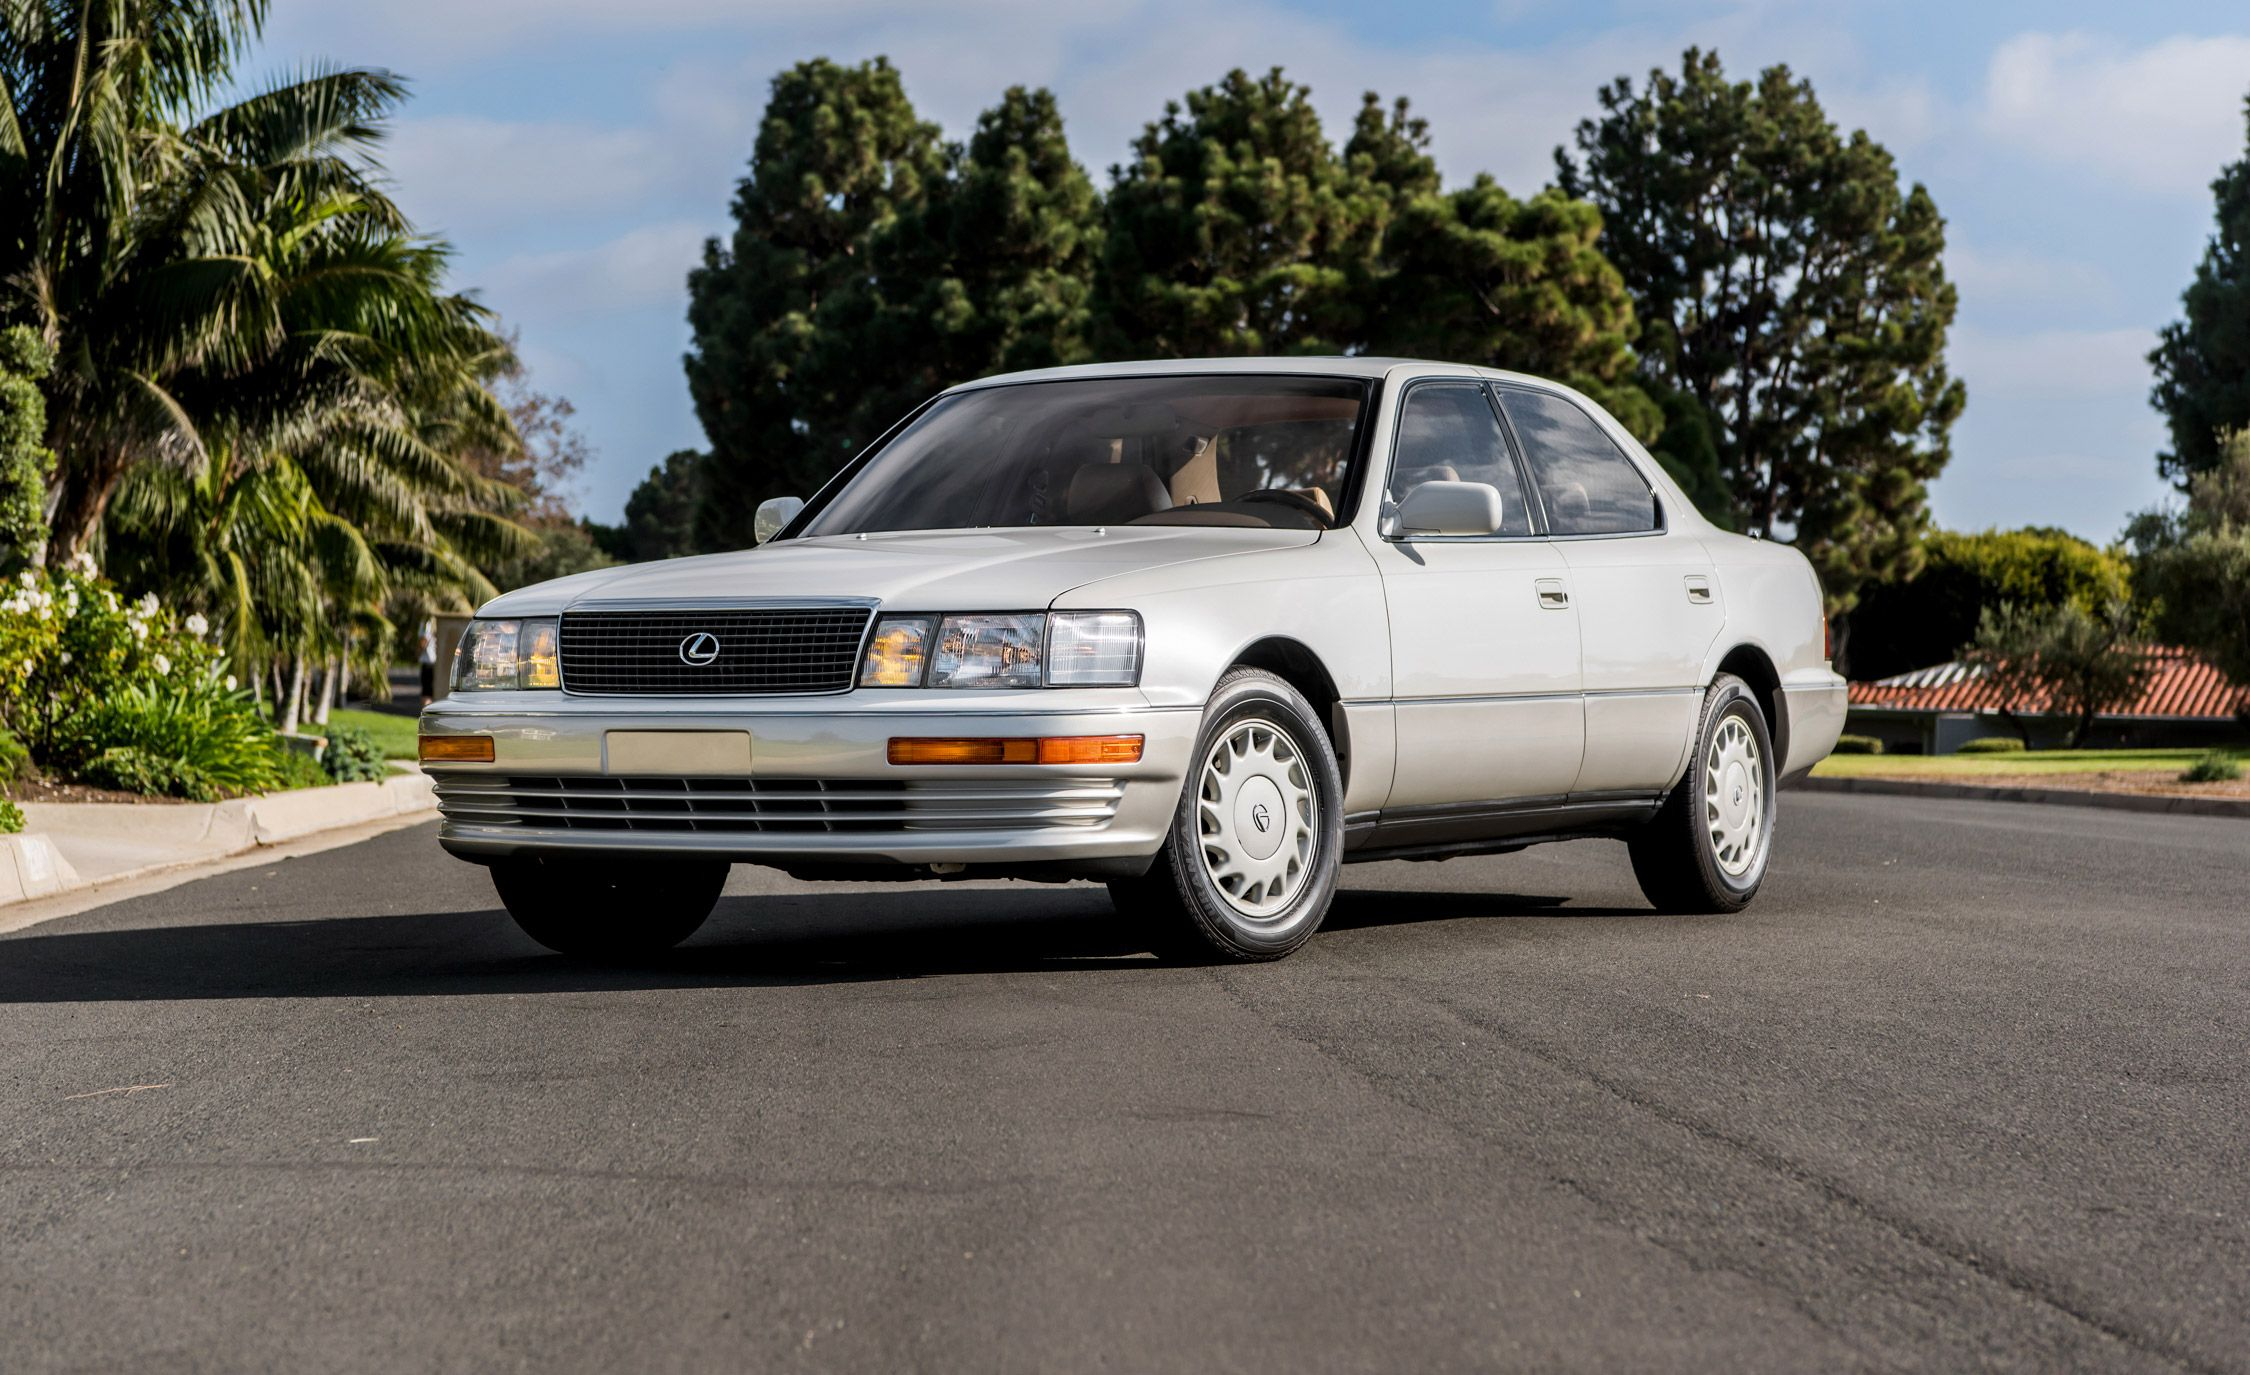 Luxury, Japan Style: Revisiting the Original Lexus LS400